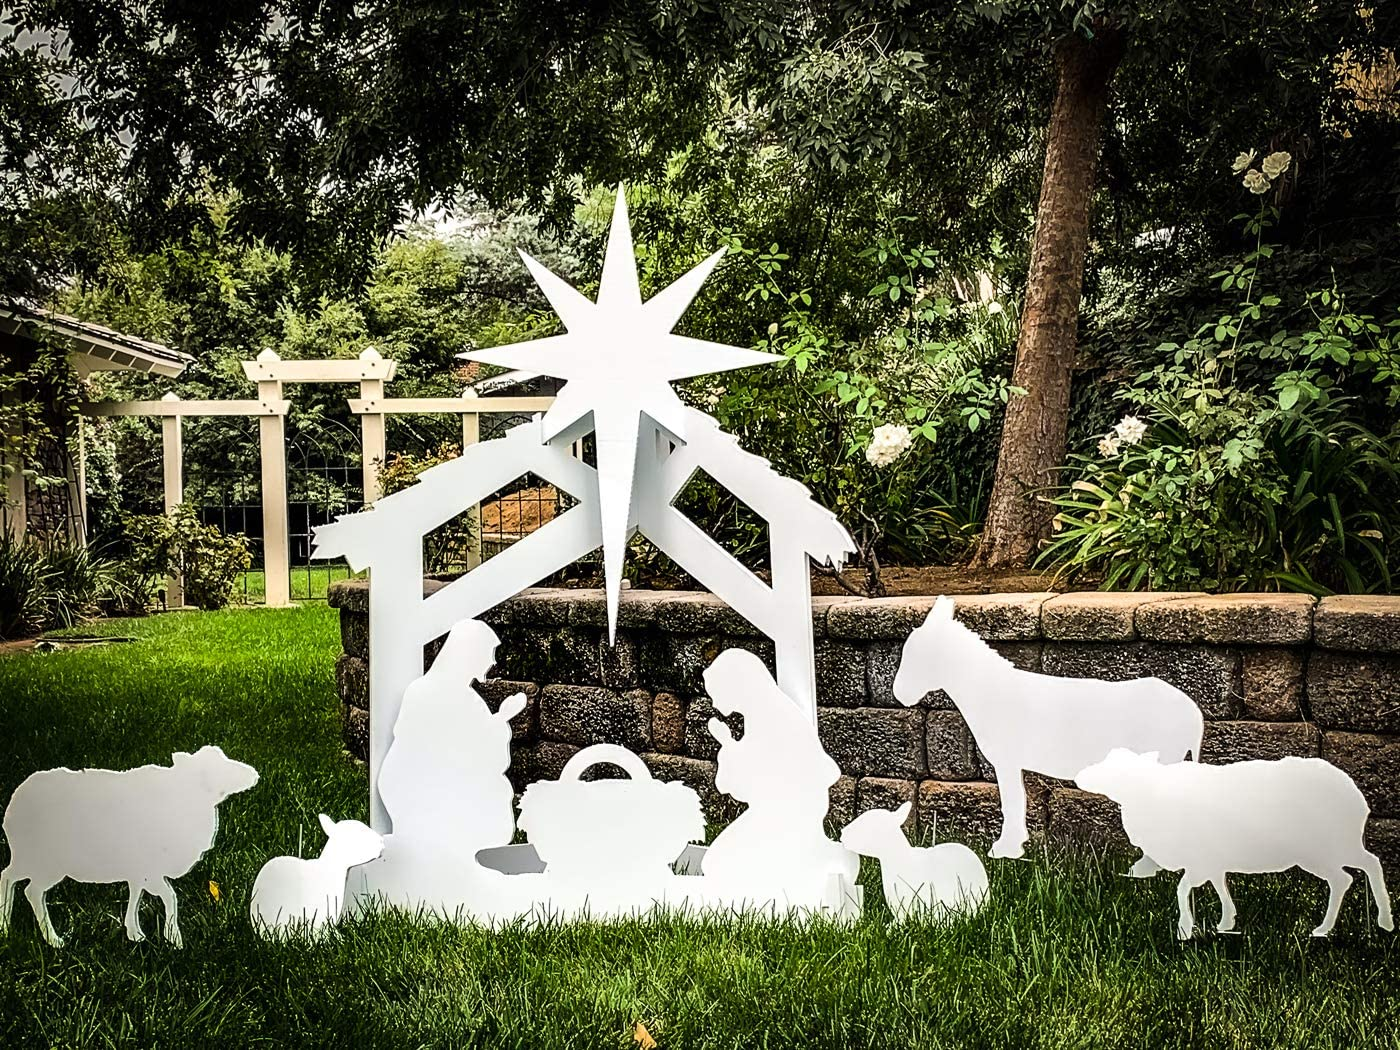 Max 79% OFF Note Card Cafe Large Outdoor Nativity Scene Display F Yard Set Department store